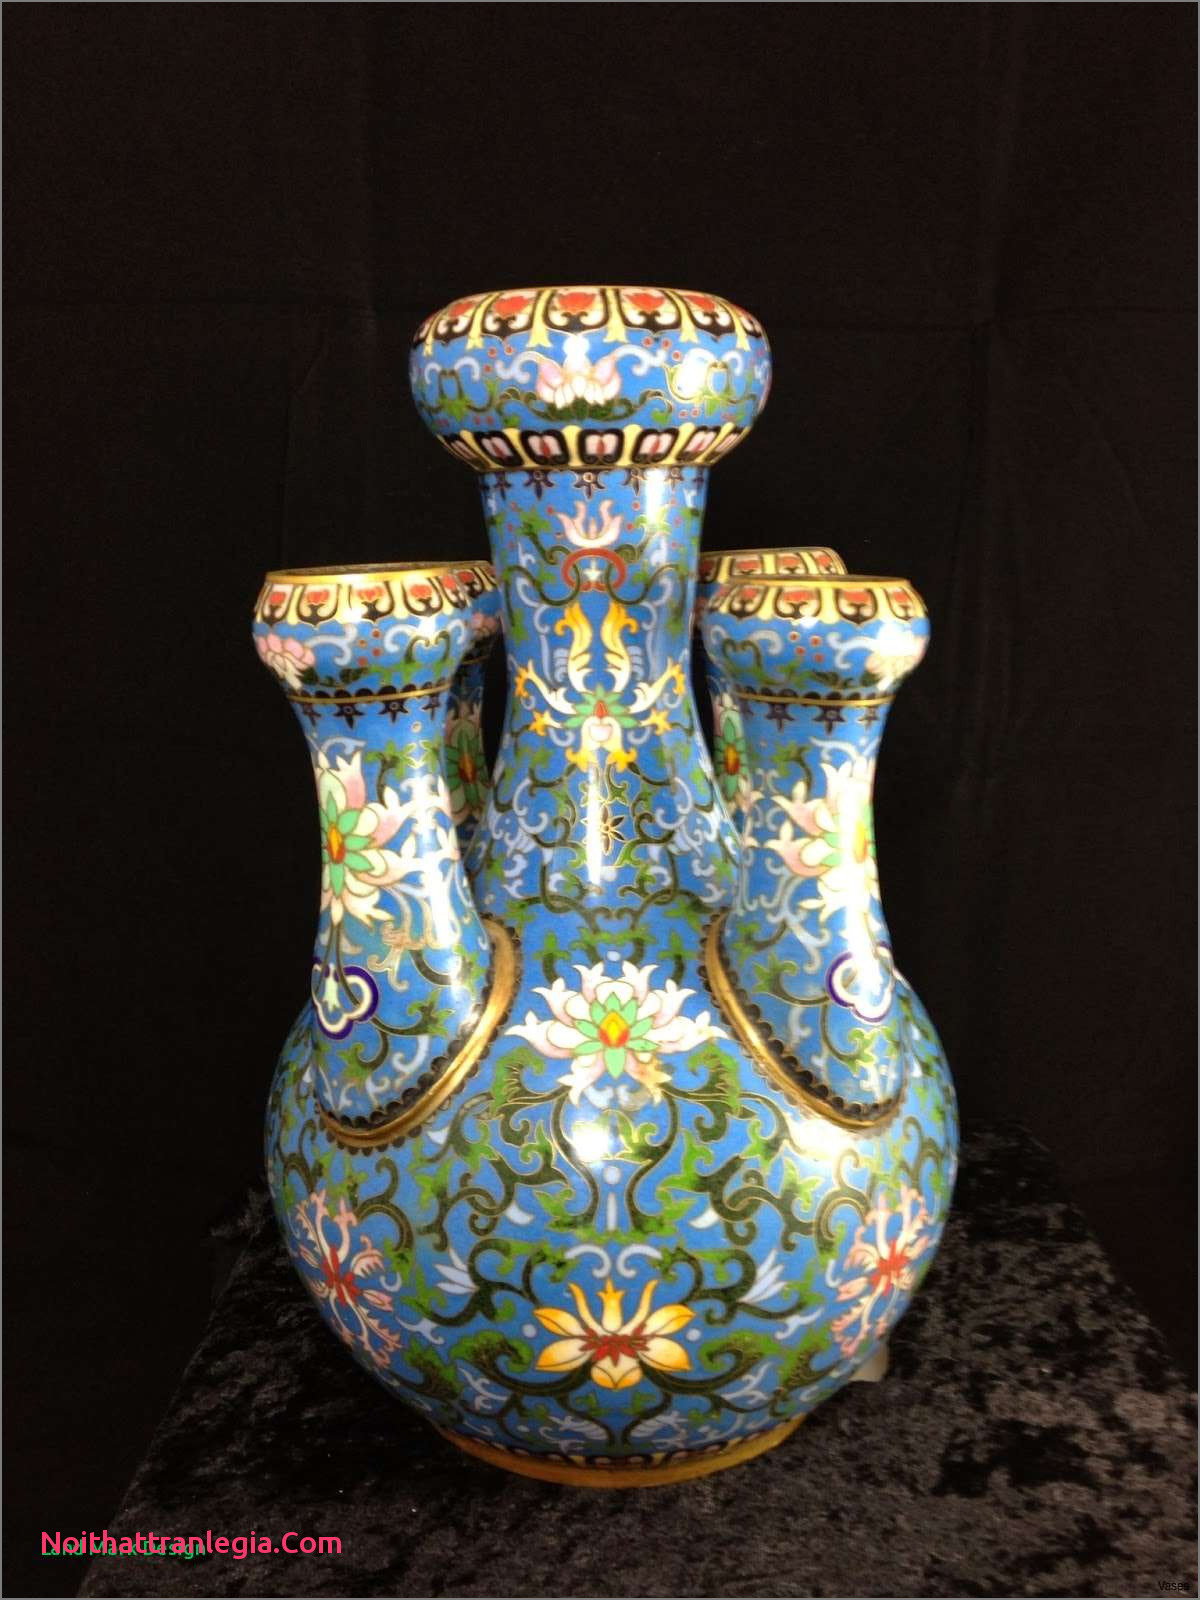 cobalt blue vases antique of 20 chinese antique vase noithattranlegia vases design in 213 1h vases antique asian the increased trade of chinese ware during 16th century has significantly